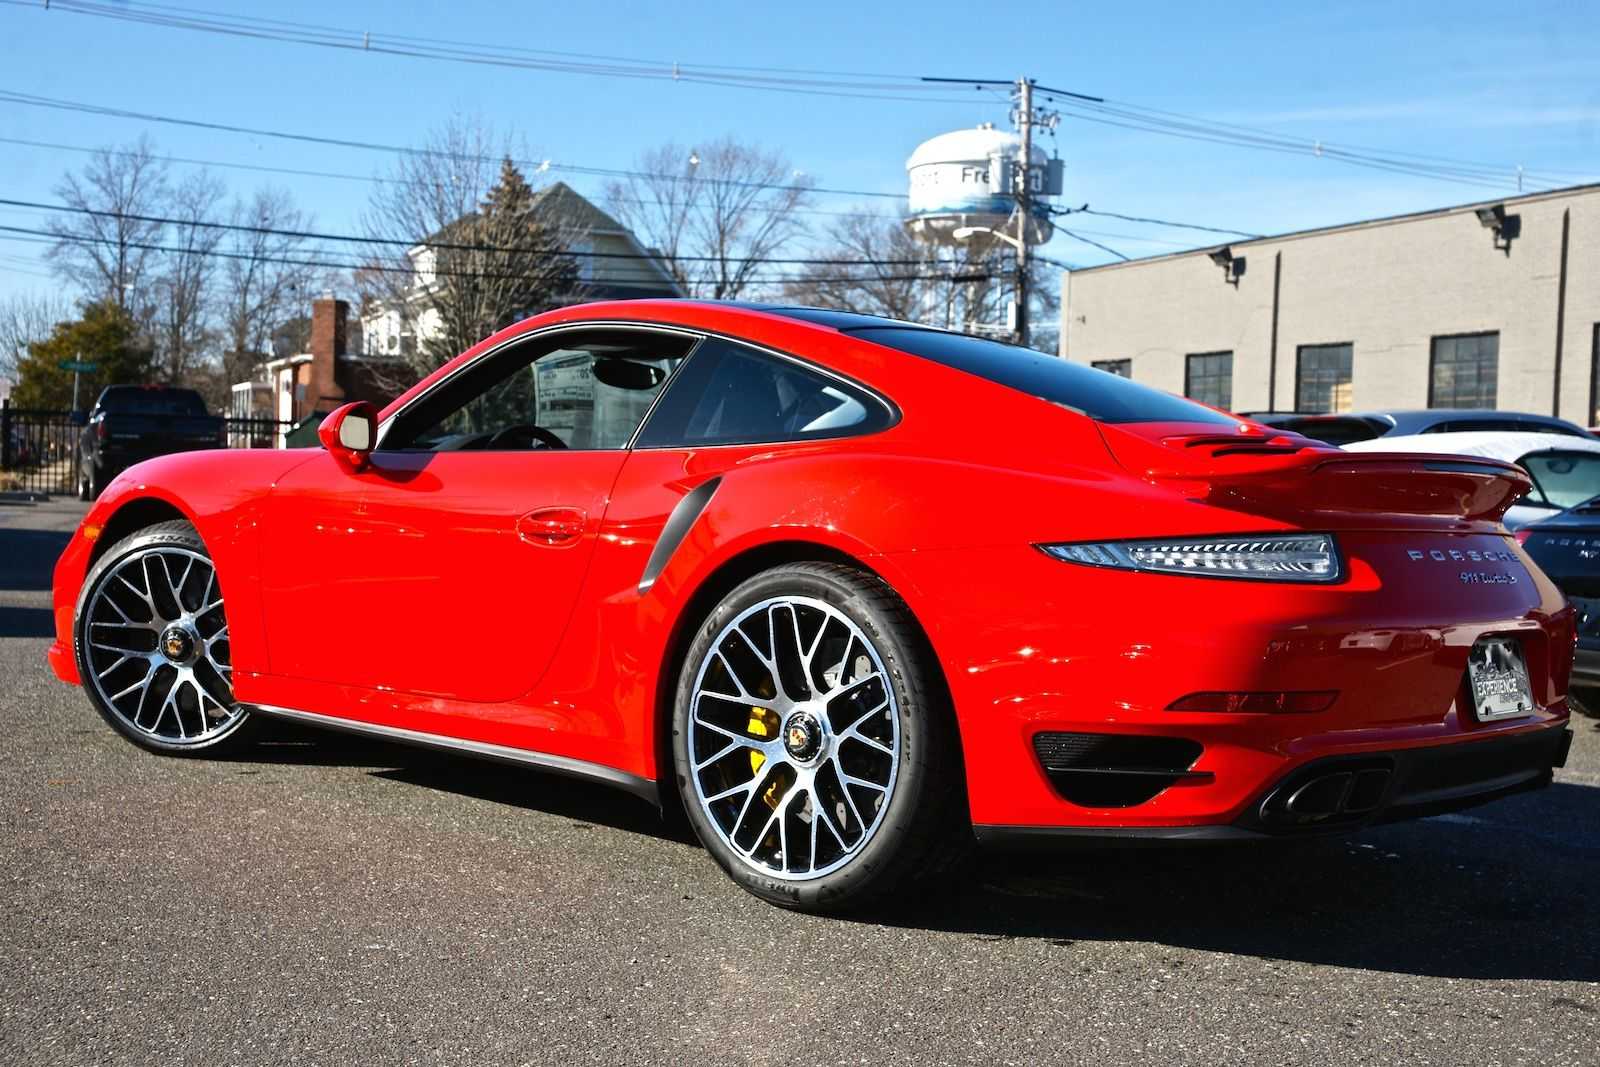 h and this is what completes the 911 turbo experience as it seems to be a